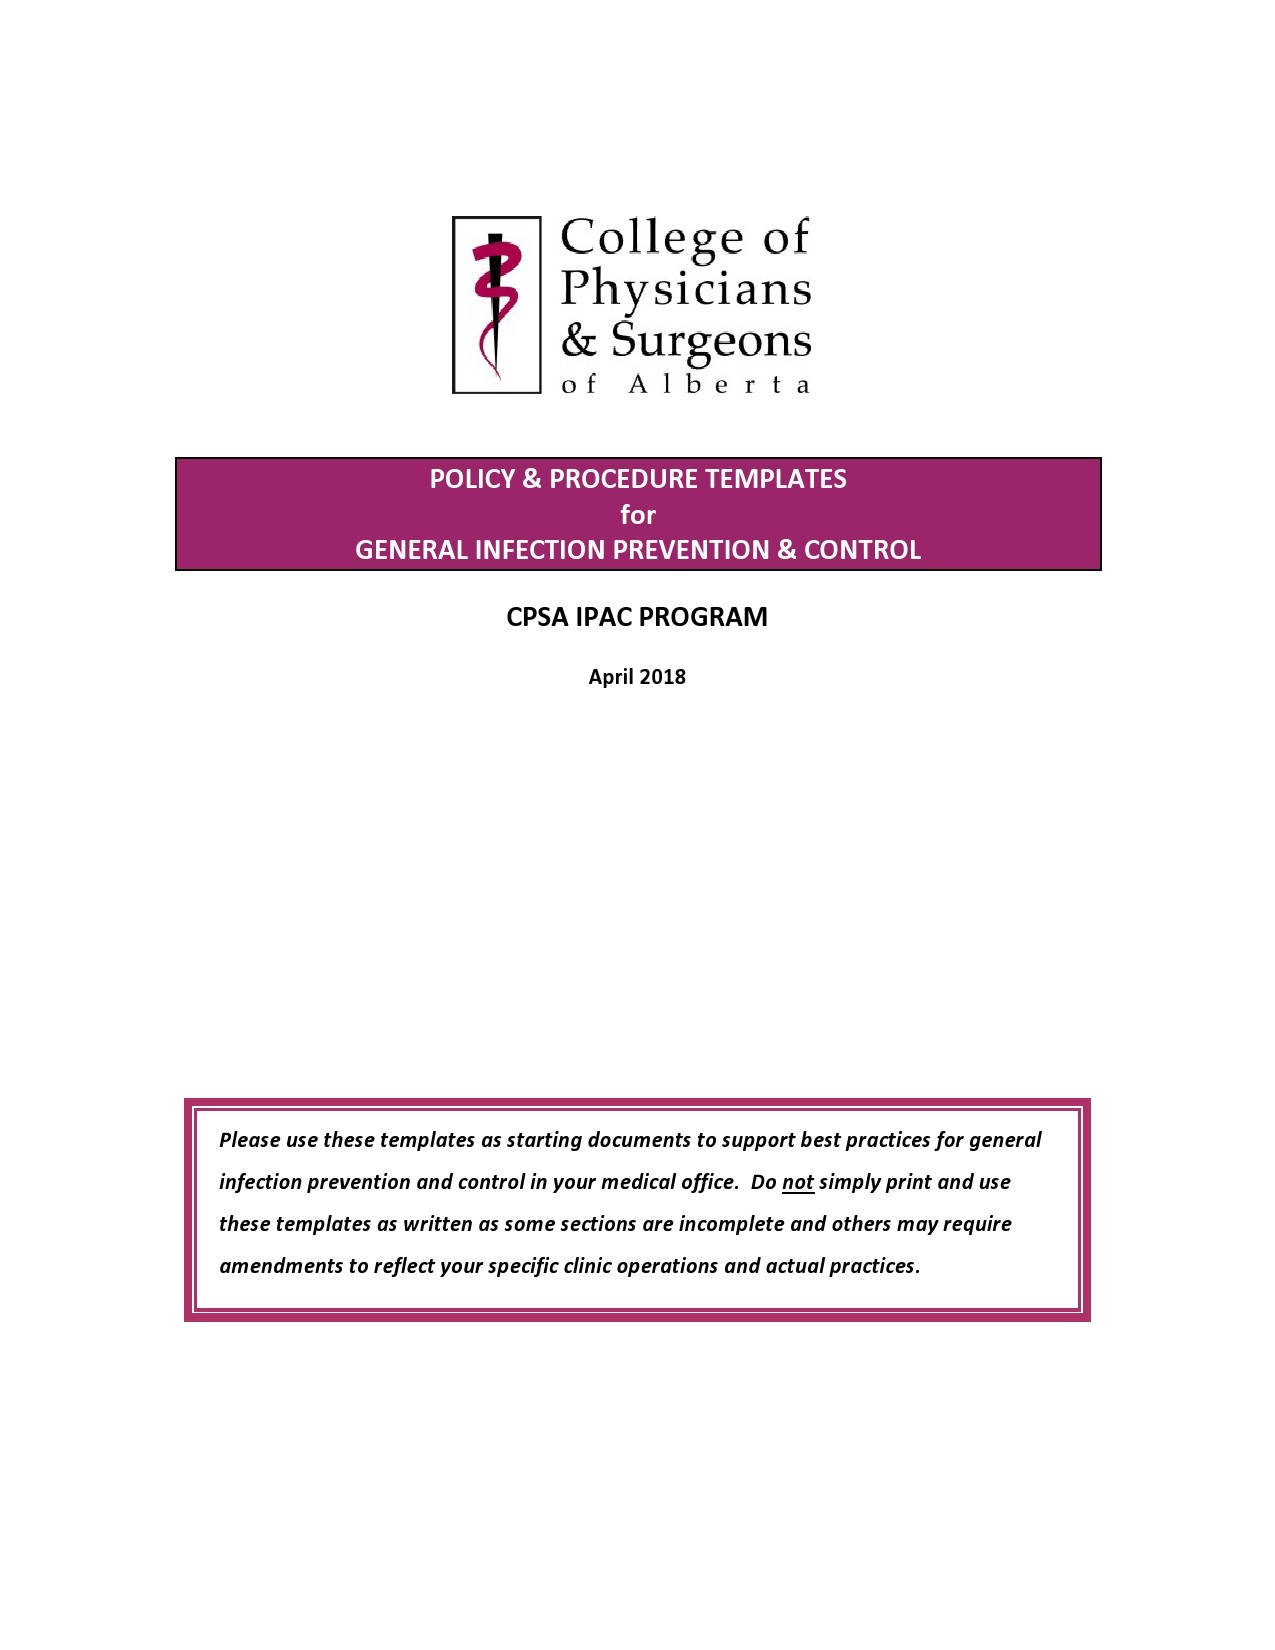 Free policy and procedure template 25